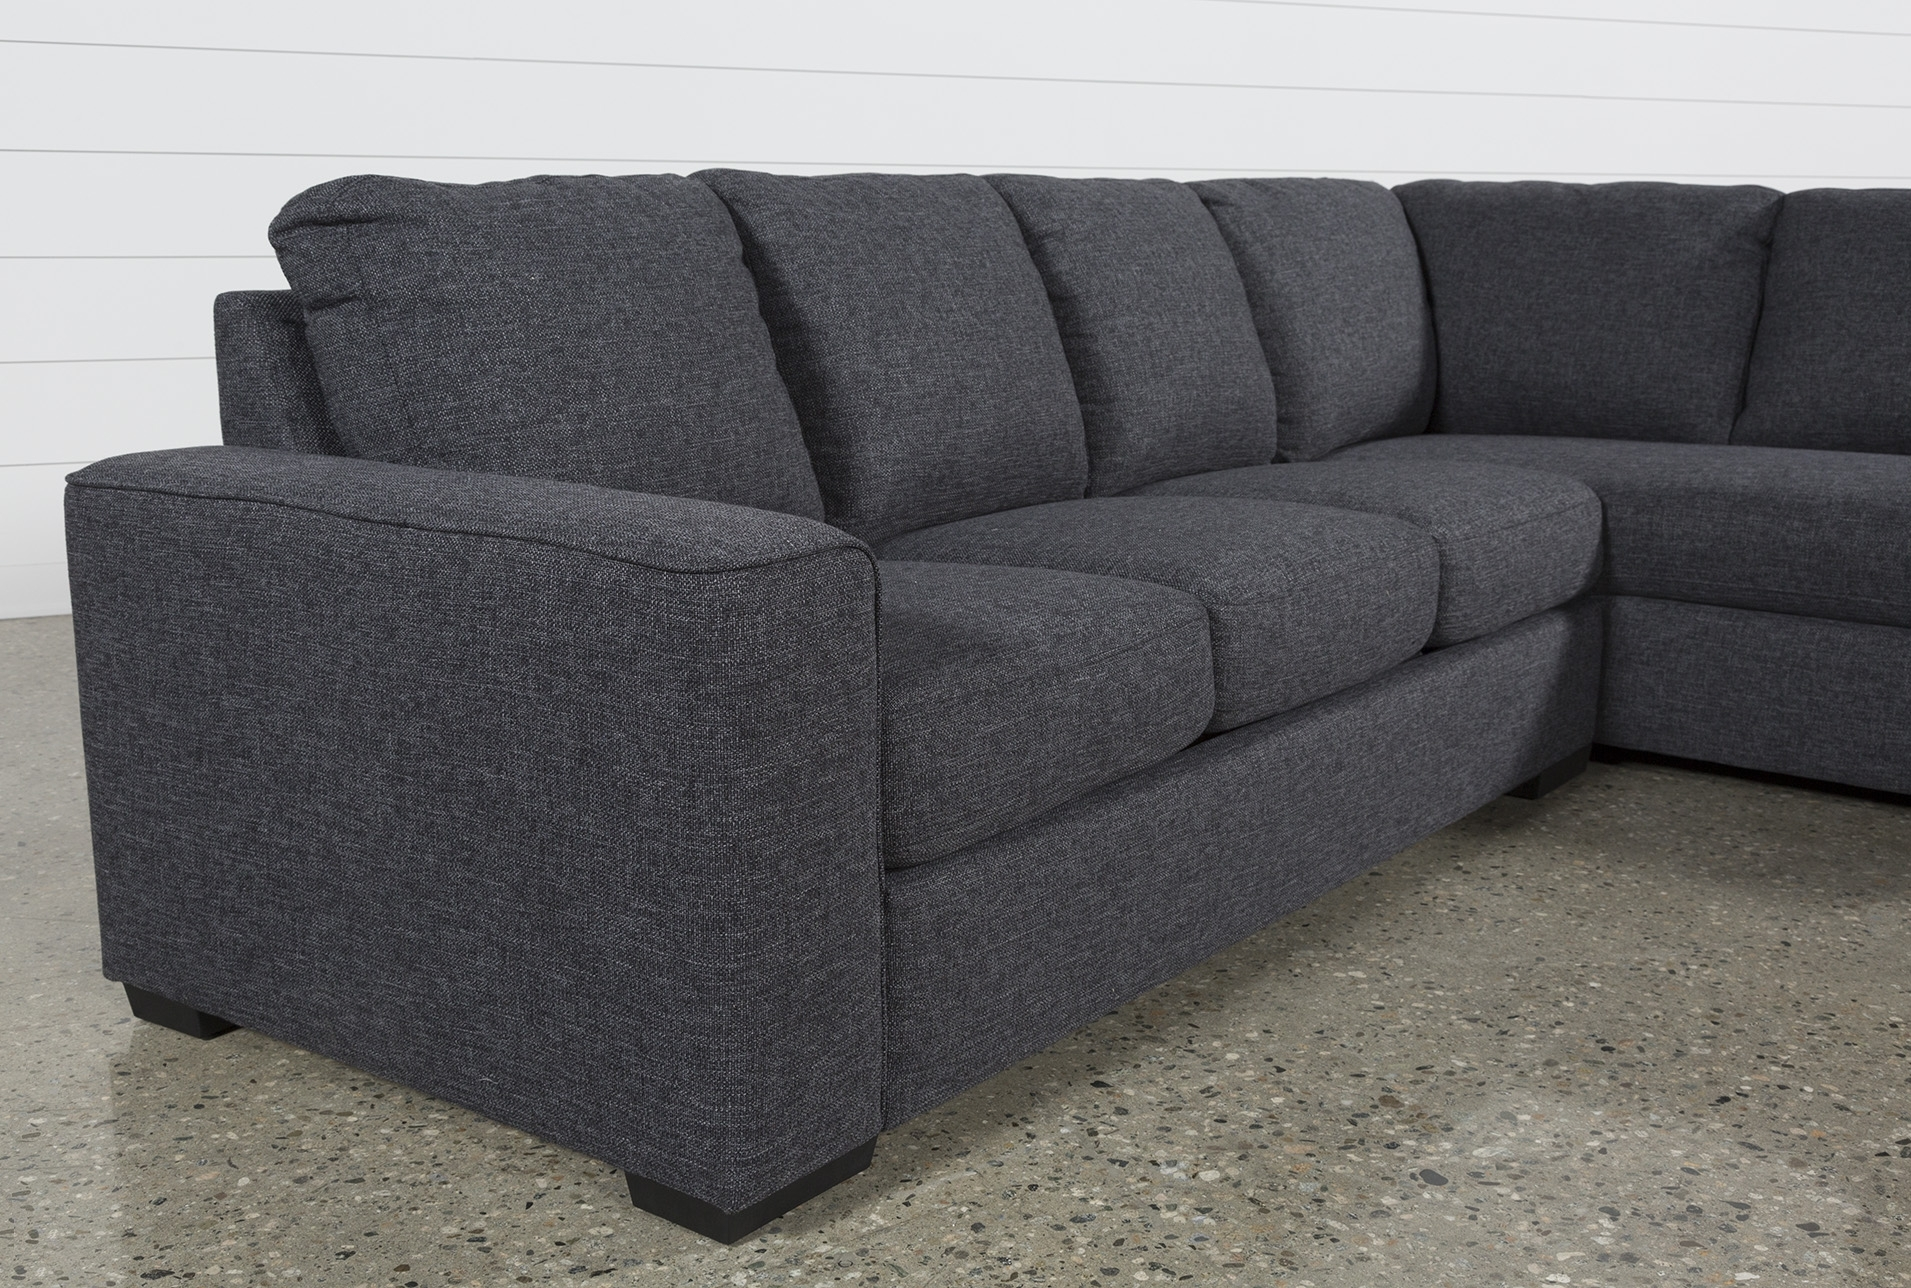 Lucy Dark Grey 2 Piece Sectional W/raf Chaise | Pinterest | Dark Regarding Lucy Dark Grey 2 Piece Sectionals With Laf Chaise (View 4 of 25)